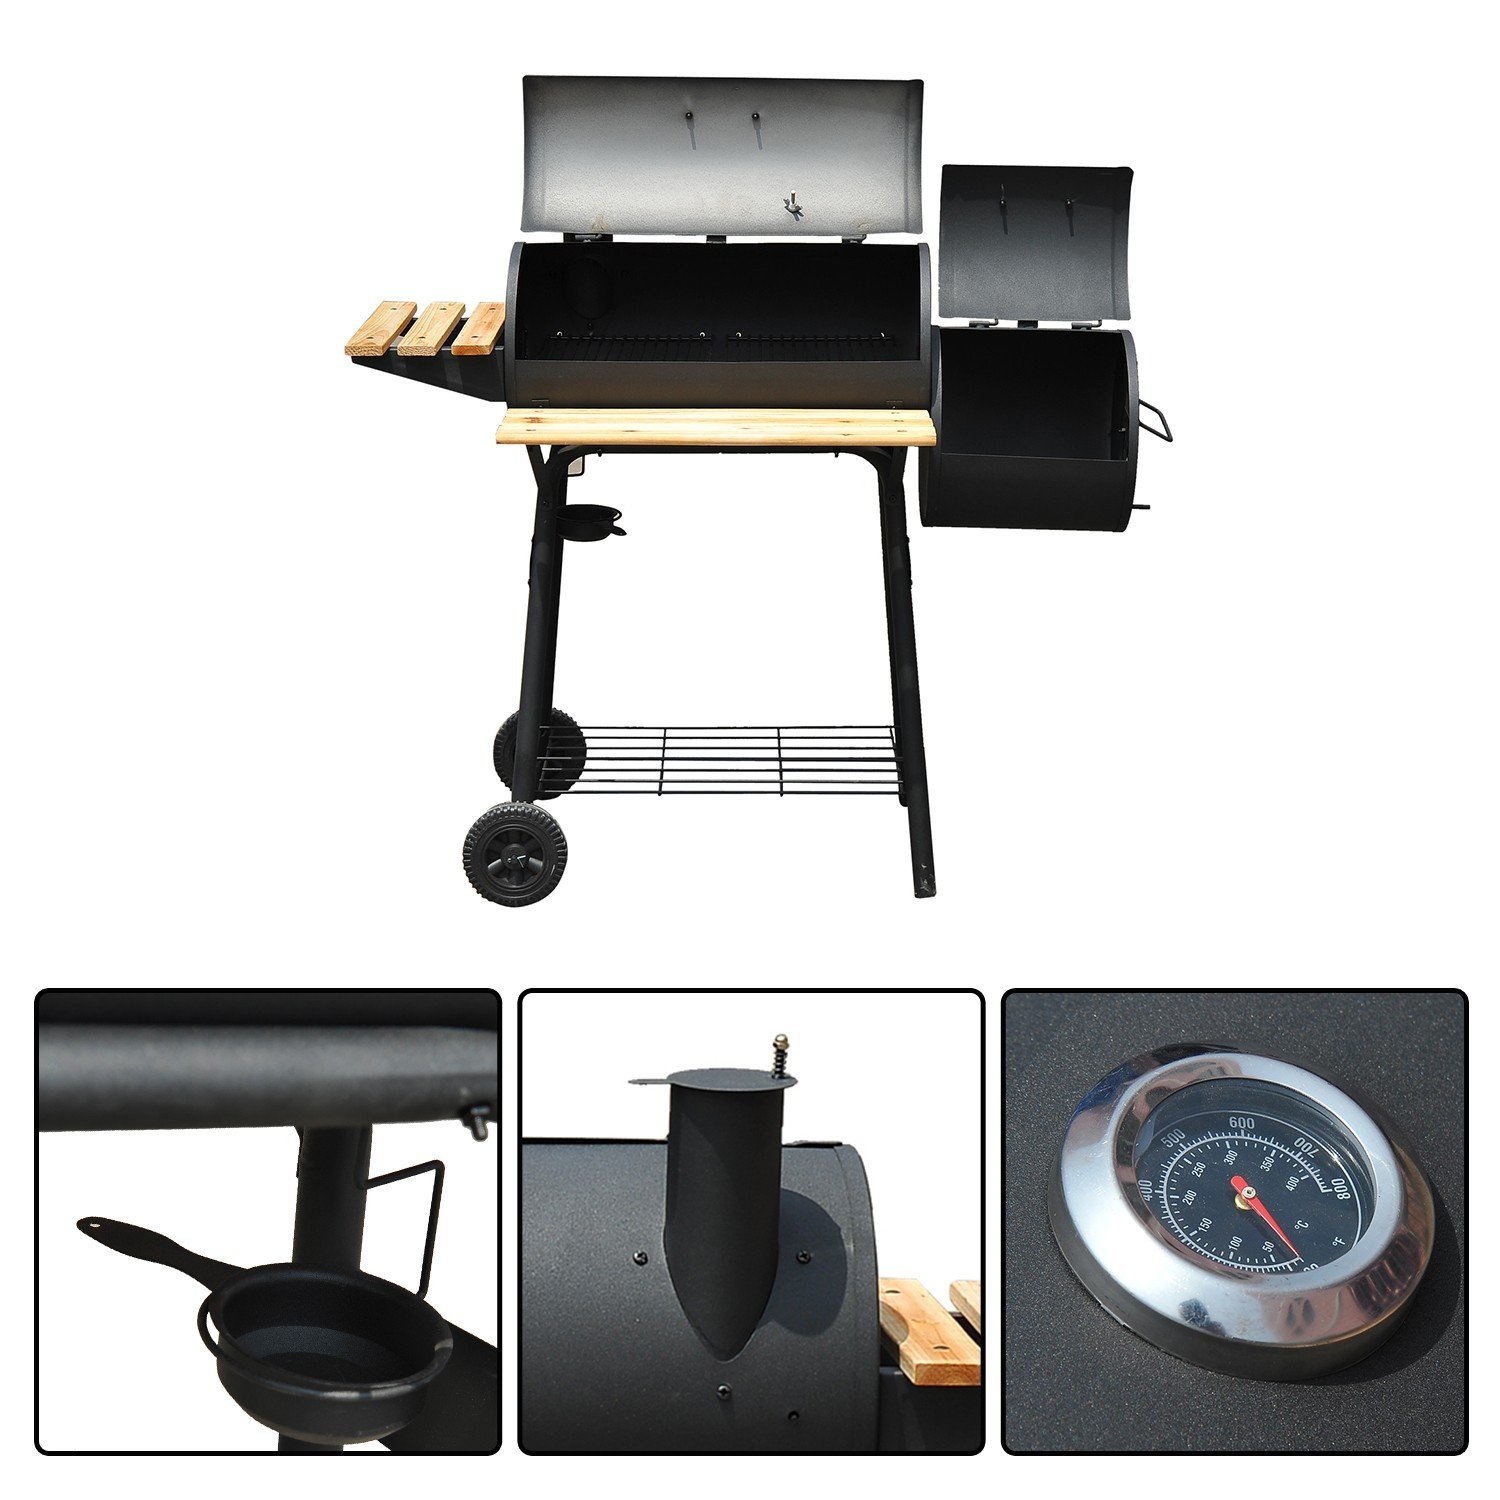 Charcoal BBQ Grill Backyard Cooking Outdoor Smoker with ebook